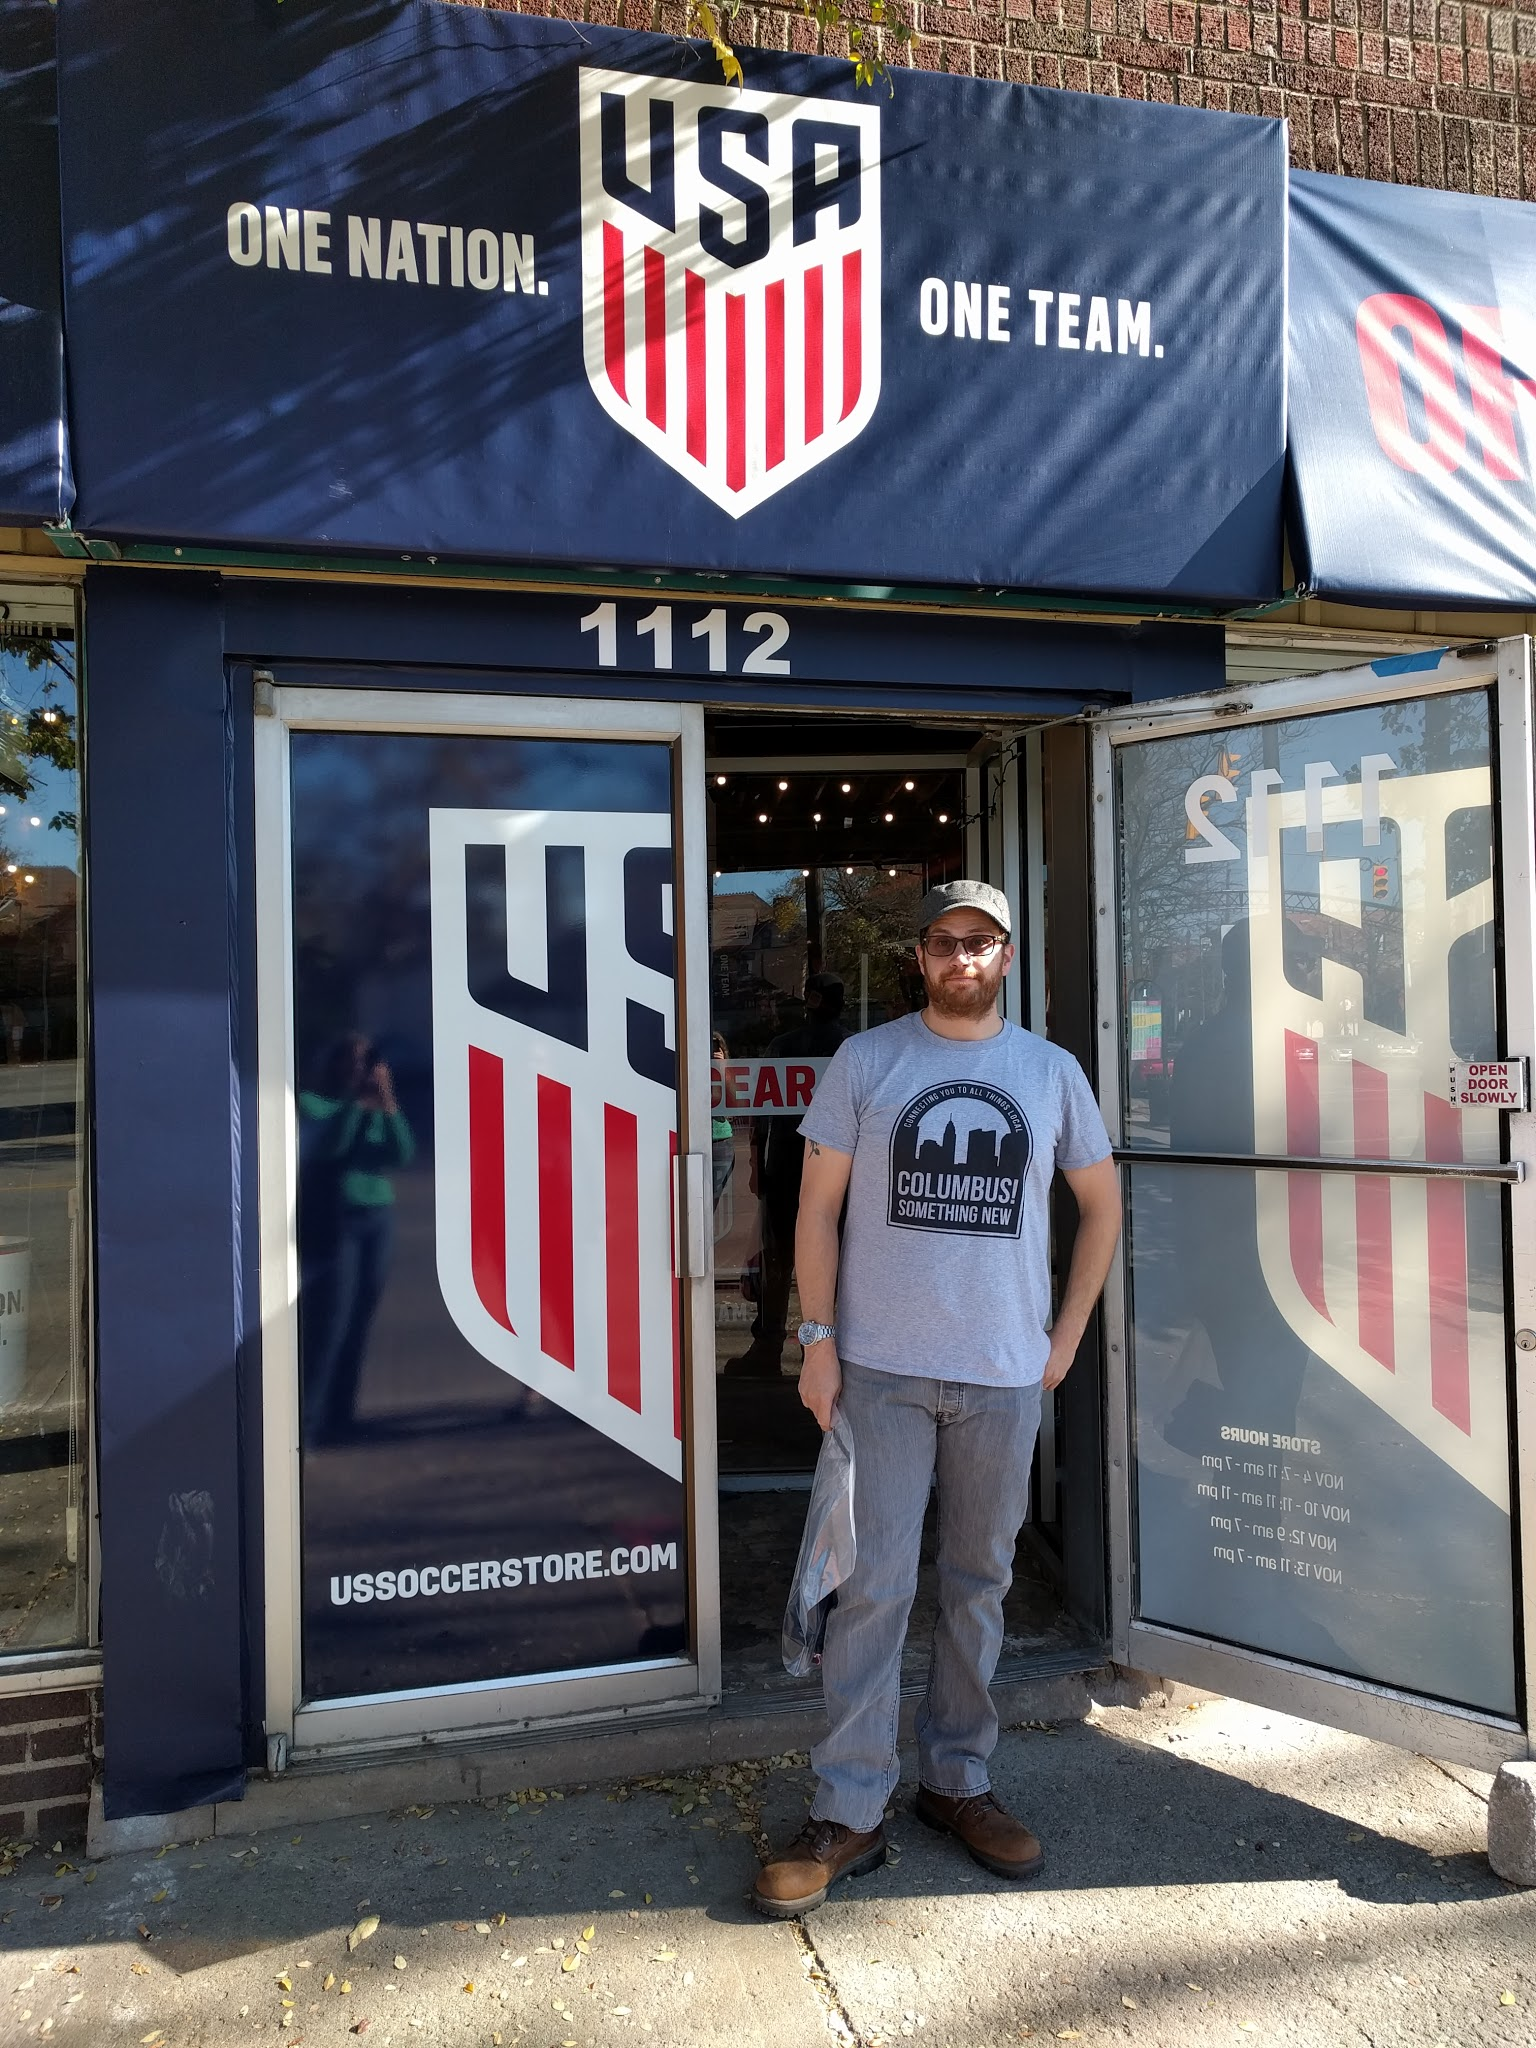 U.S. Soccer Pop up shop